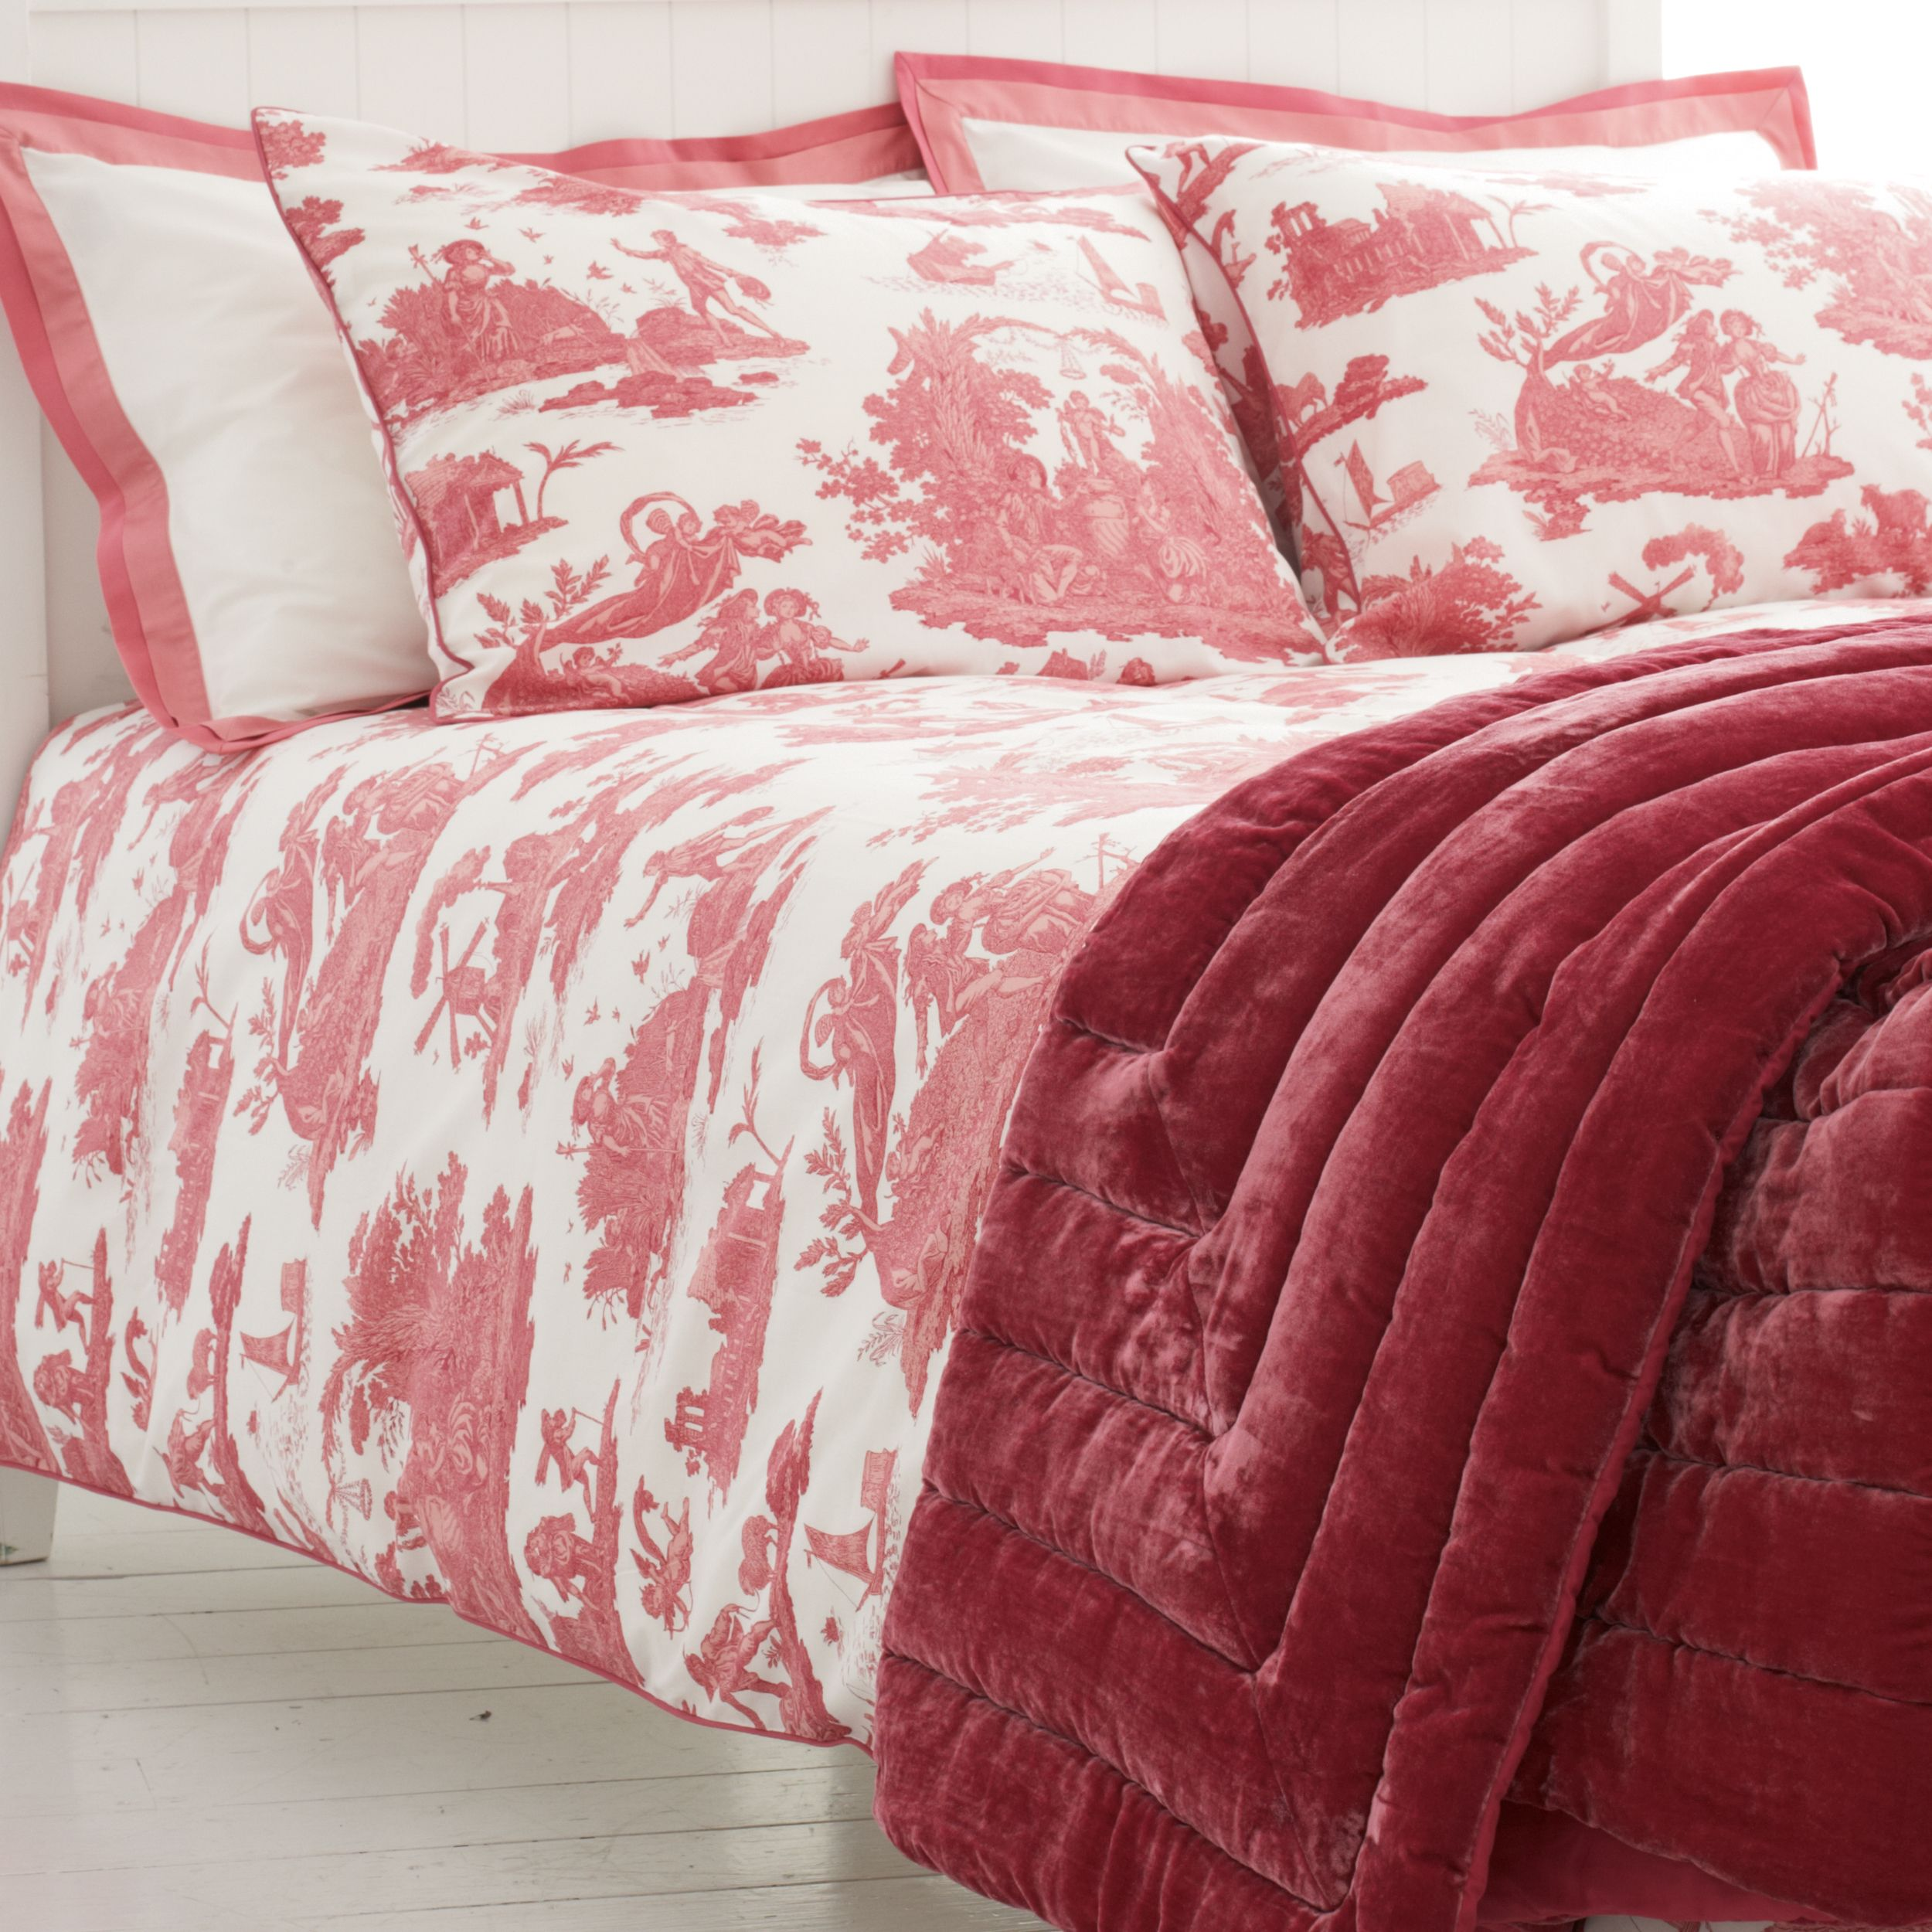 Toile Duvet Cover Toile Cotton Bedlinen I Love This Bedding Toile